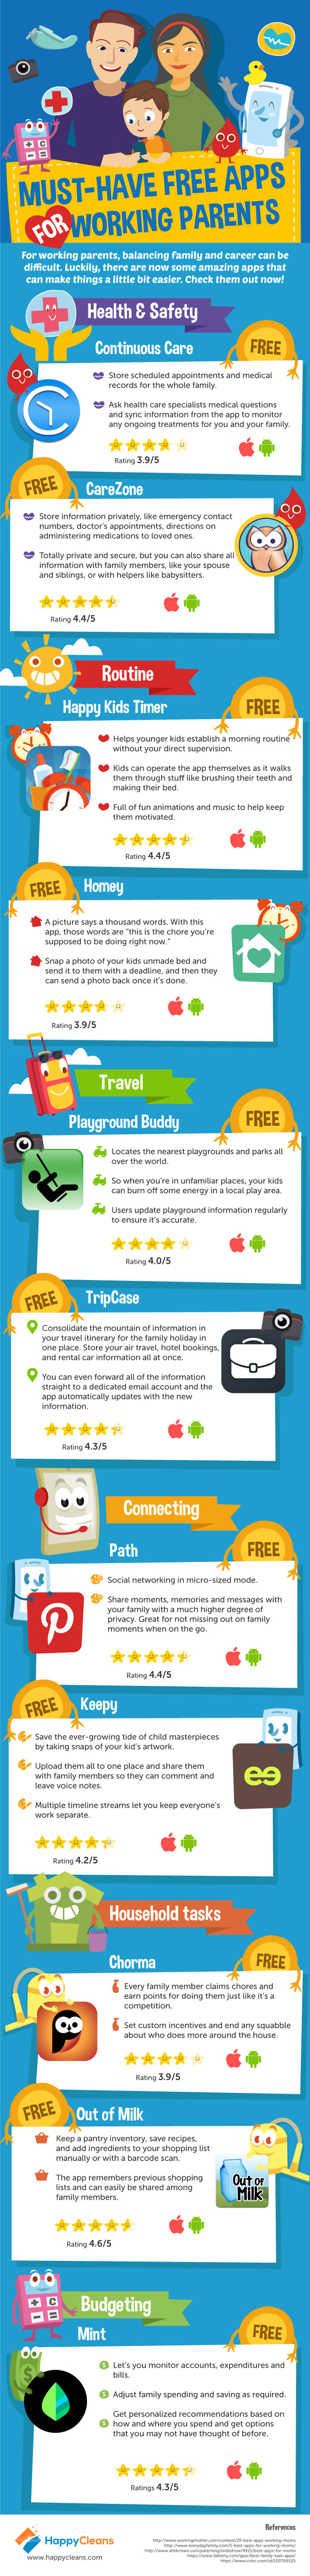 Must Have Apps For Working Parents ( Infographic)